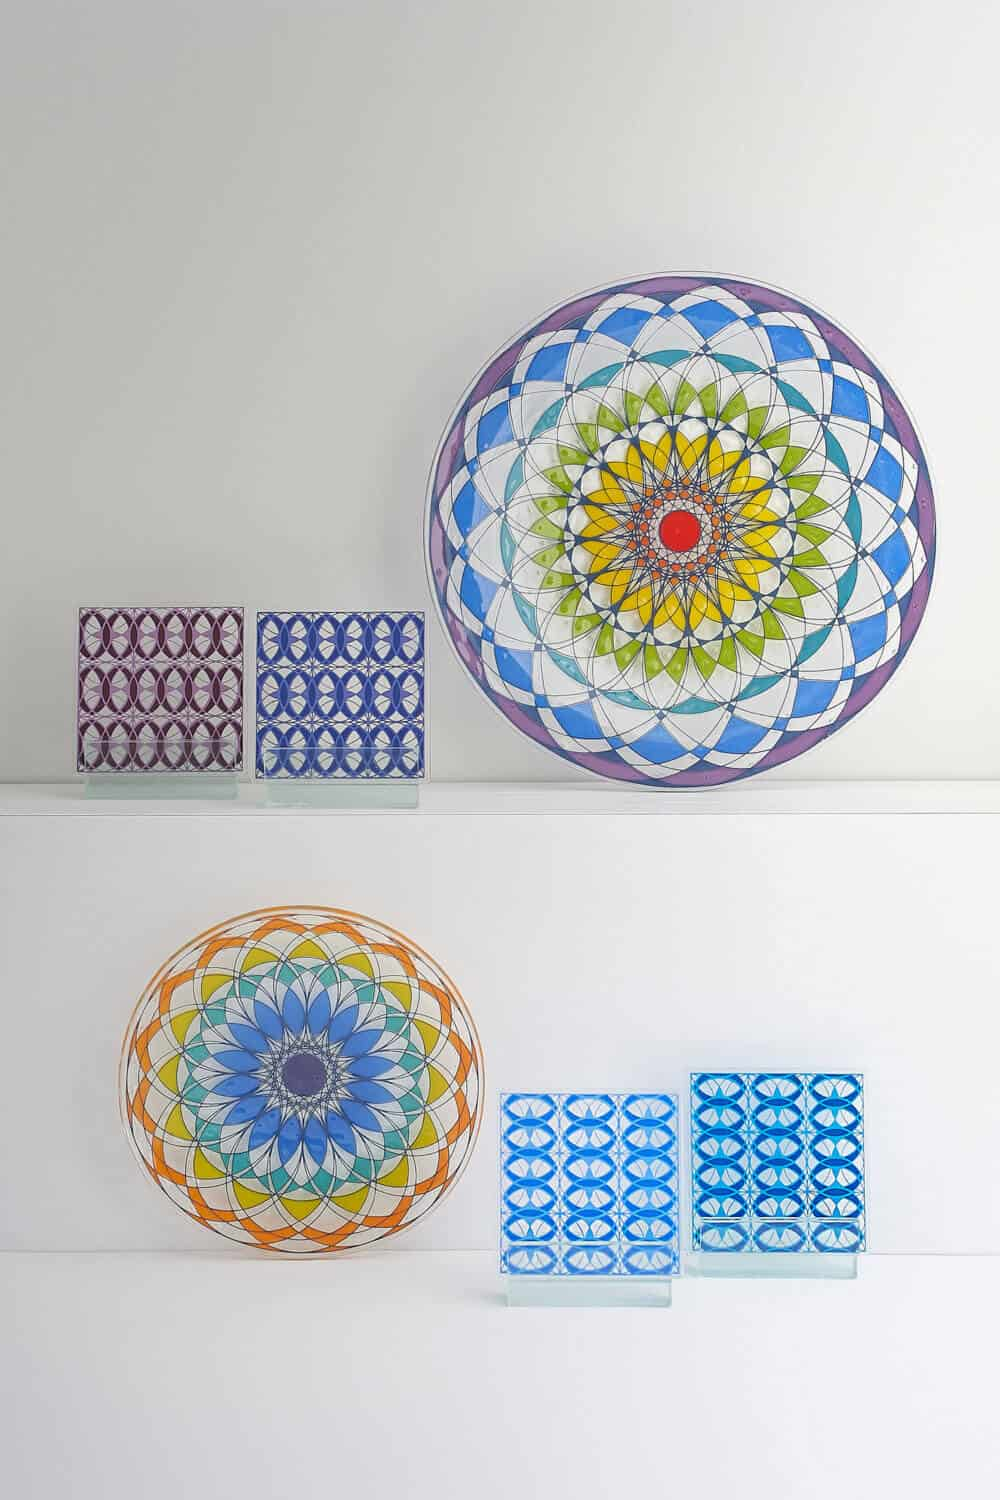 Softly lit group product image of glassware pieces including geometric plates and glass coasters